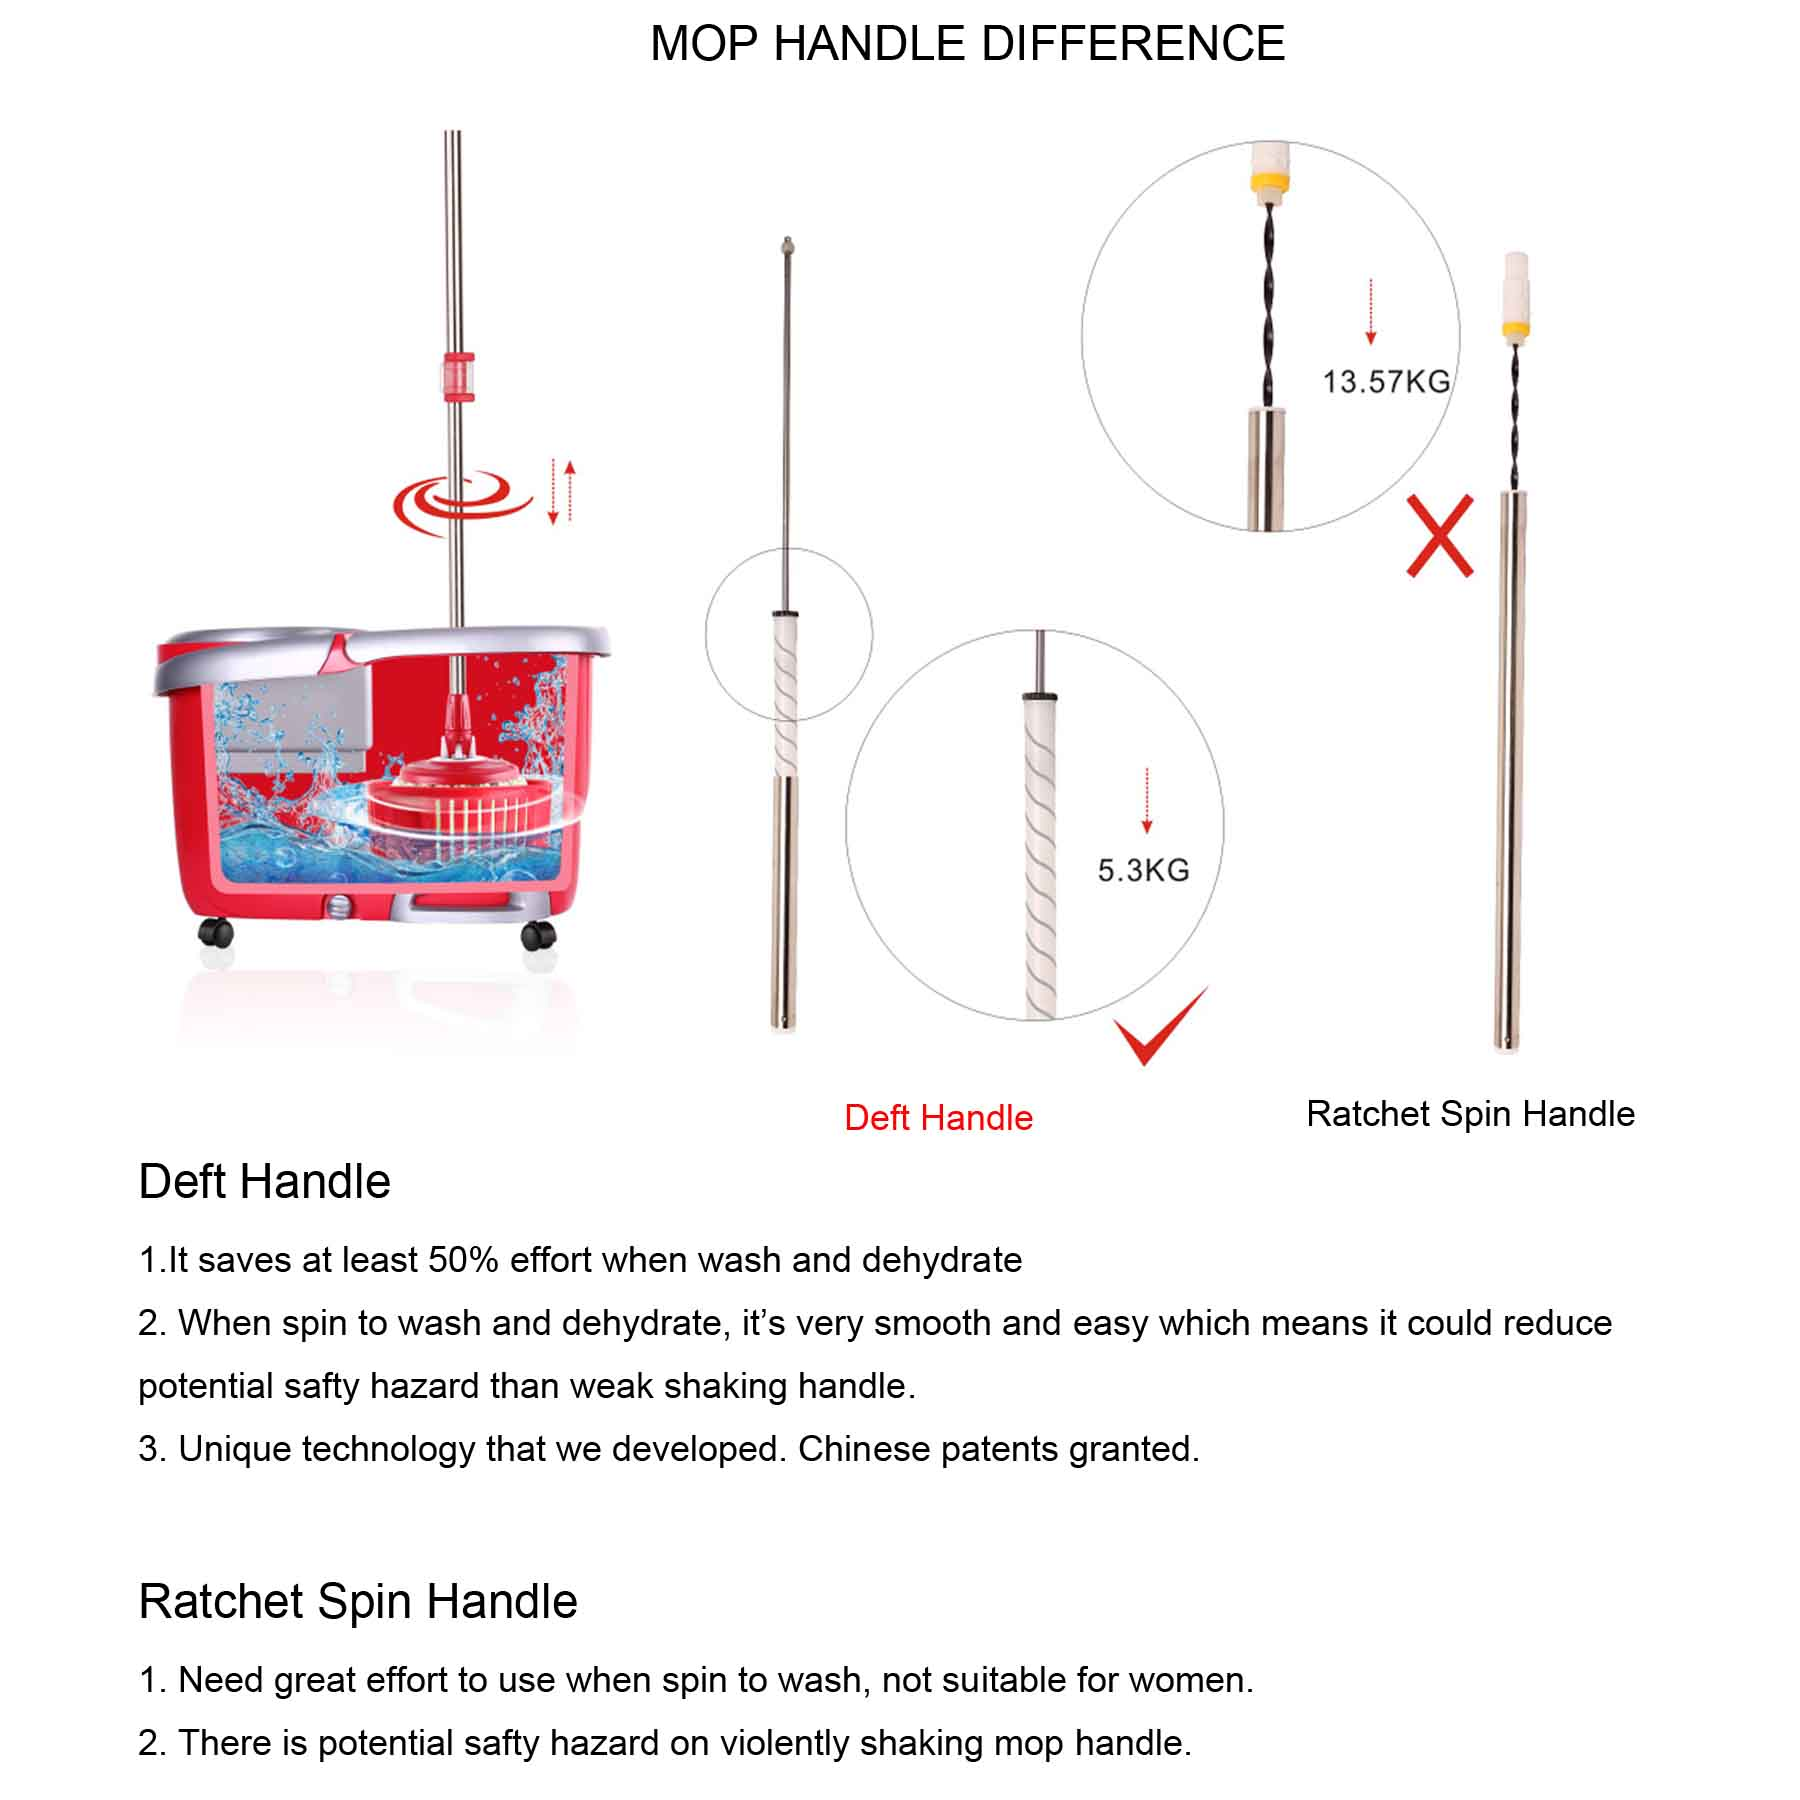 mop handle difference.jpg